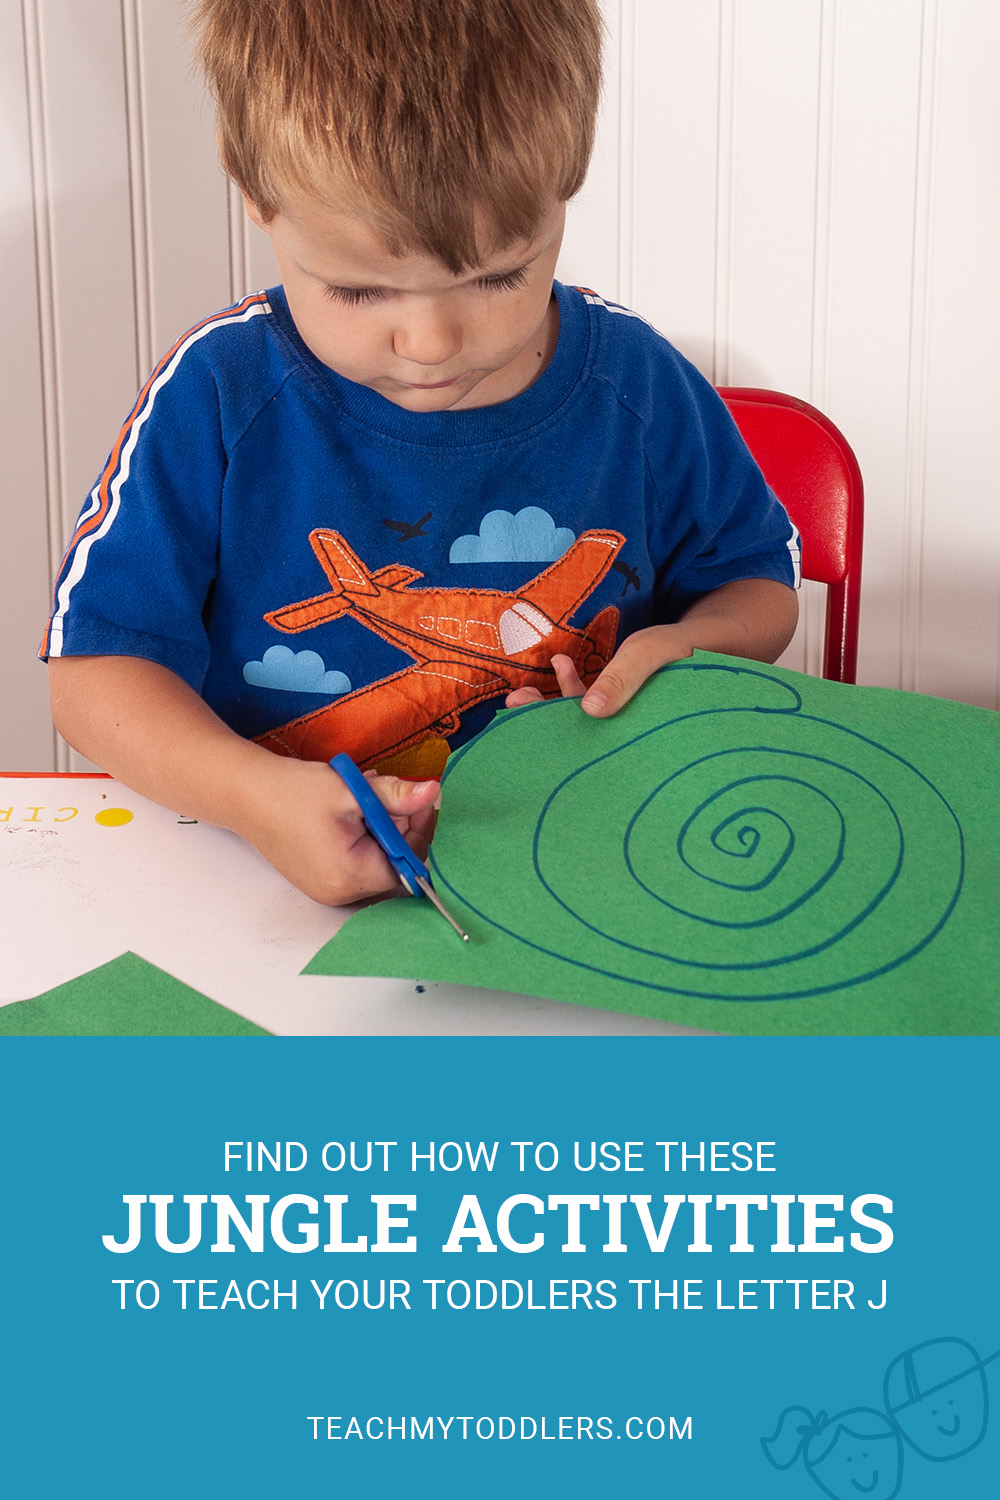 Find out how to use these jungle activities to teach your toddlers the letter j